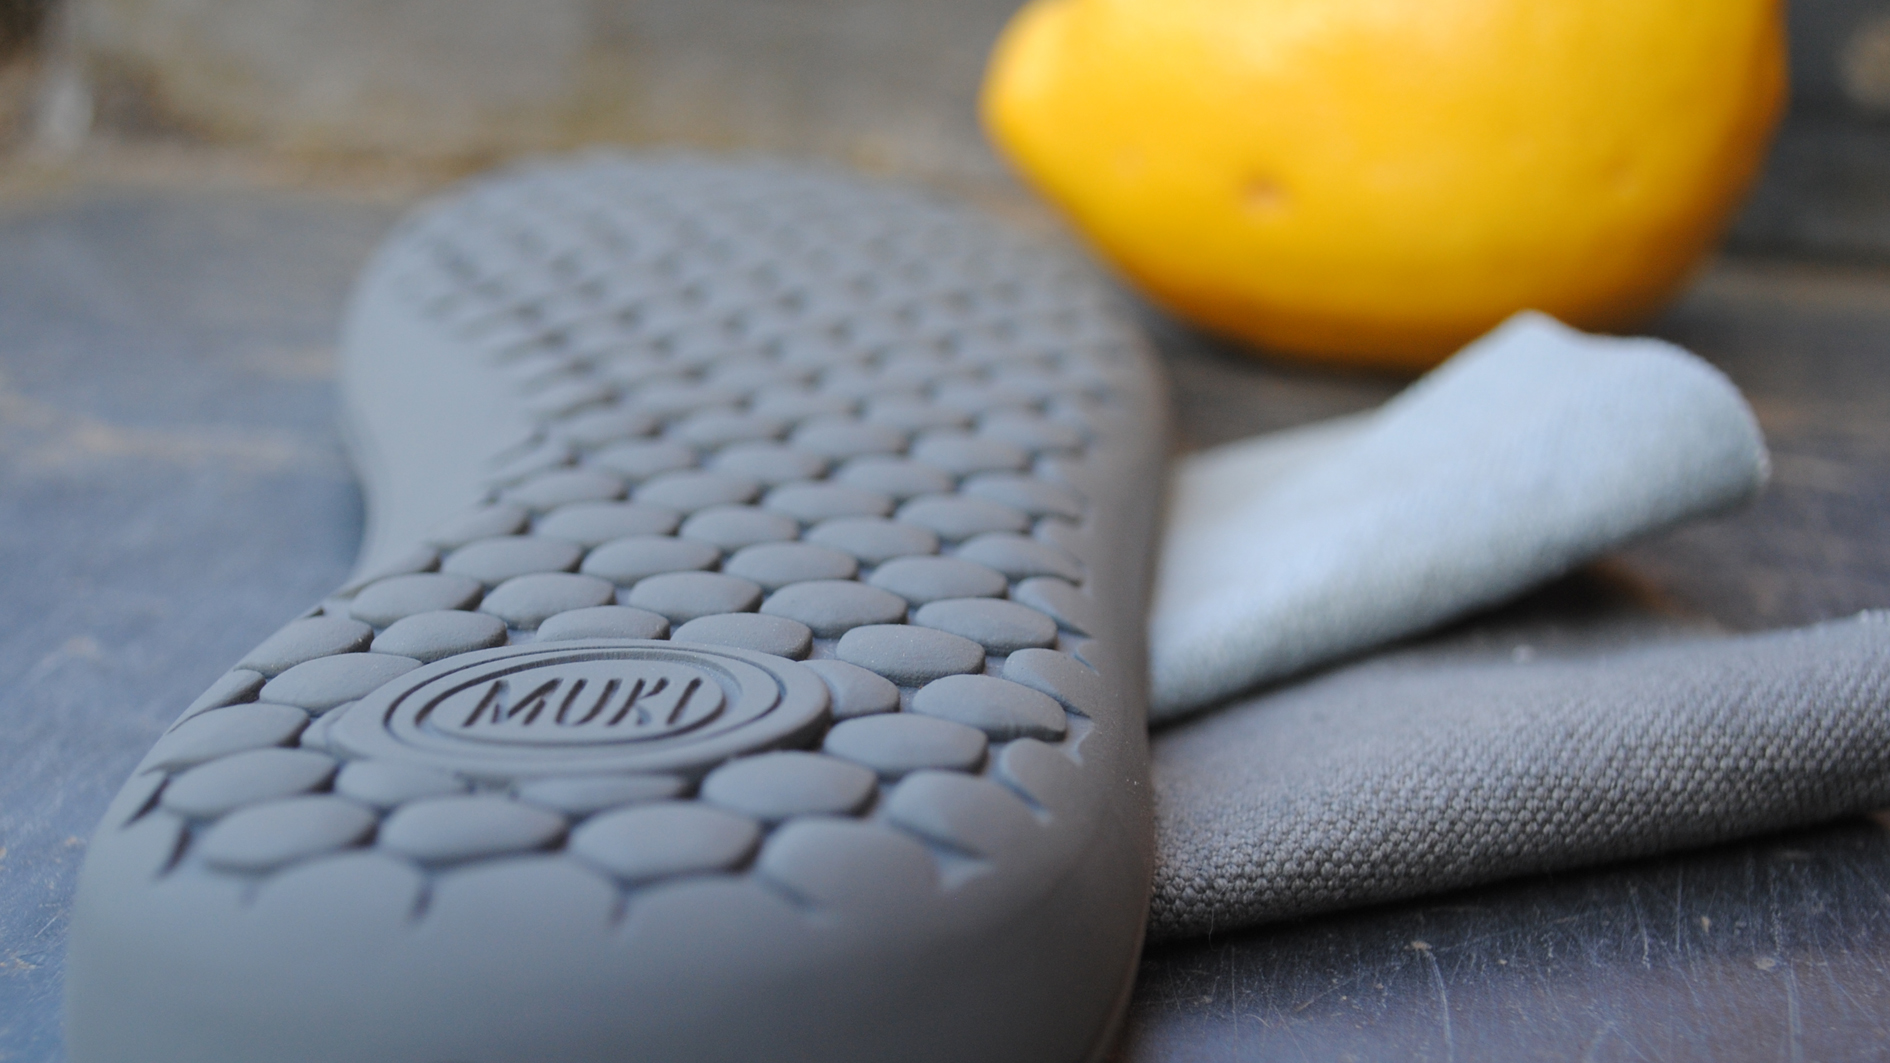 sustainable and organic materials are the base for the MUKI shoes.